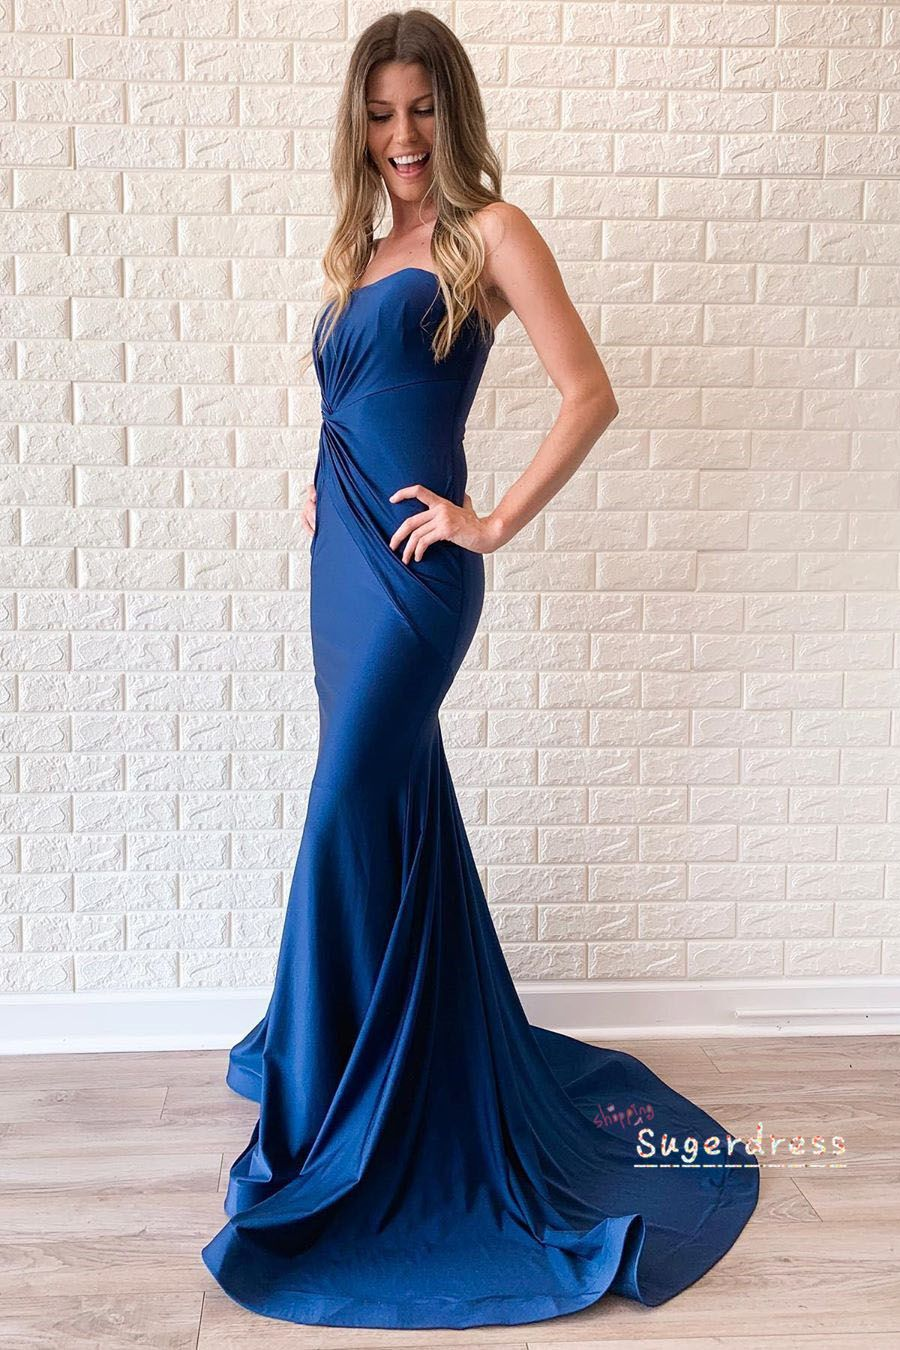 Elegant Strapless Pleated Fitted Navy Prom Dress From Sugerdress Evening Dresses Prom Navy Prom Dresses Prom Dresses [ 1350 x 900 Pixel ]